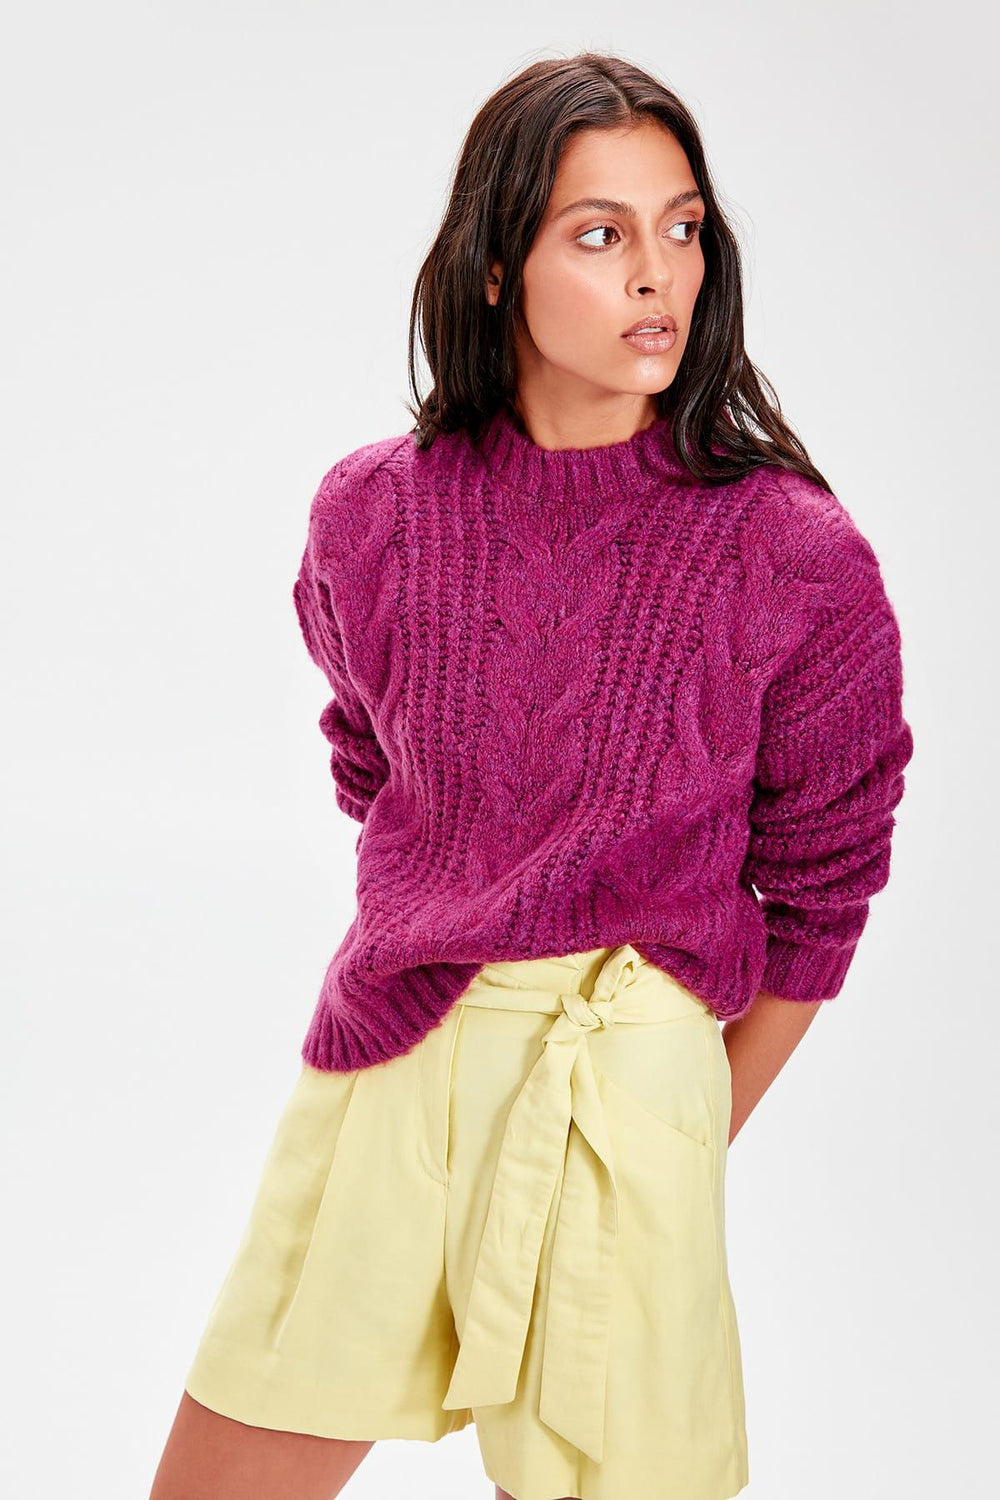 Purple Braided Knitwear Sweater - Top Maxy